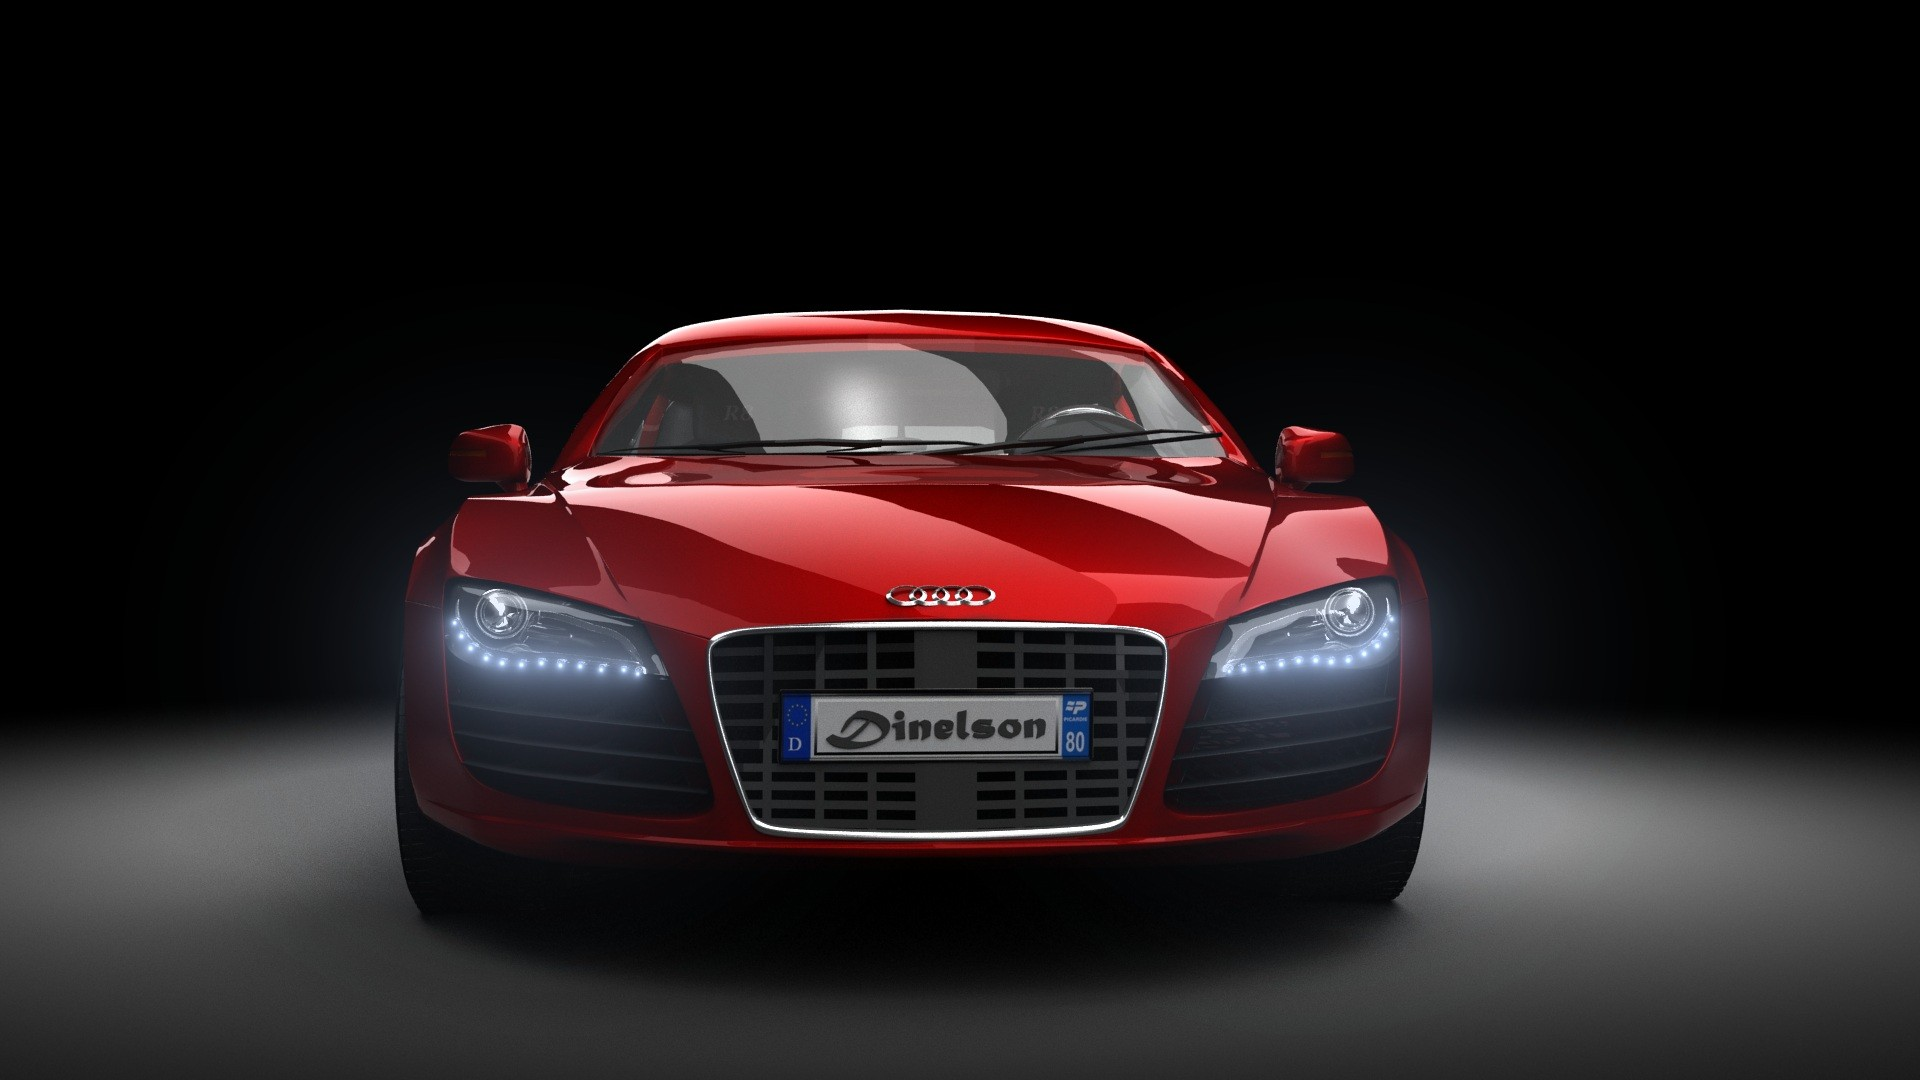 Audi R8 Wallpaper 4722 Hd Wallpapers in Cars   Imagescicom 1920x1080